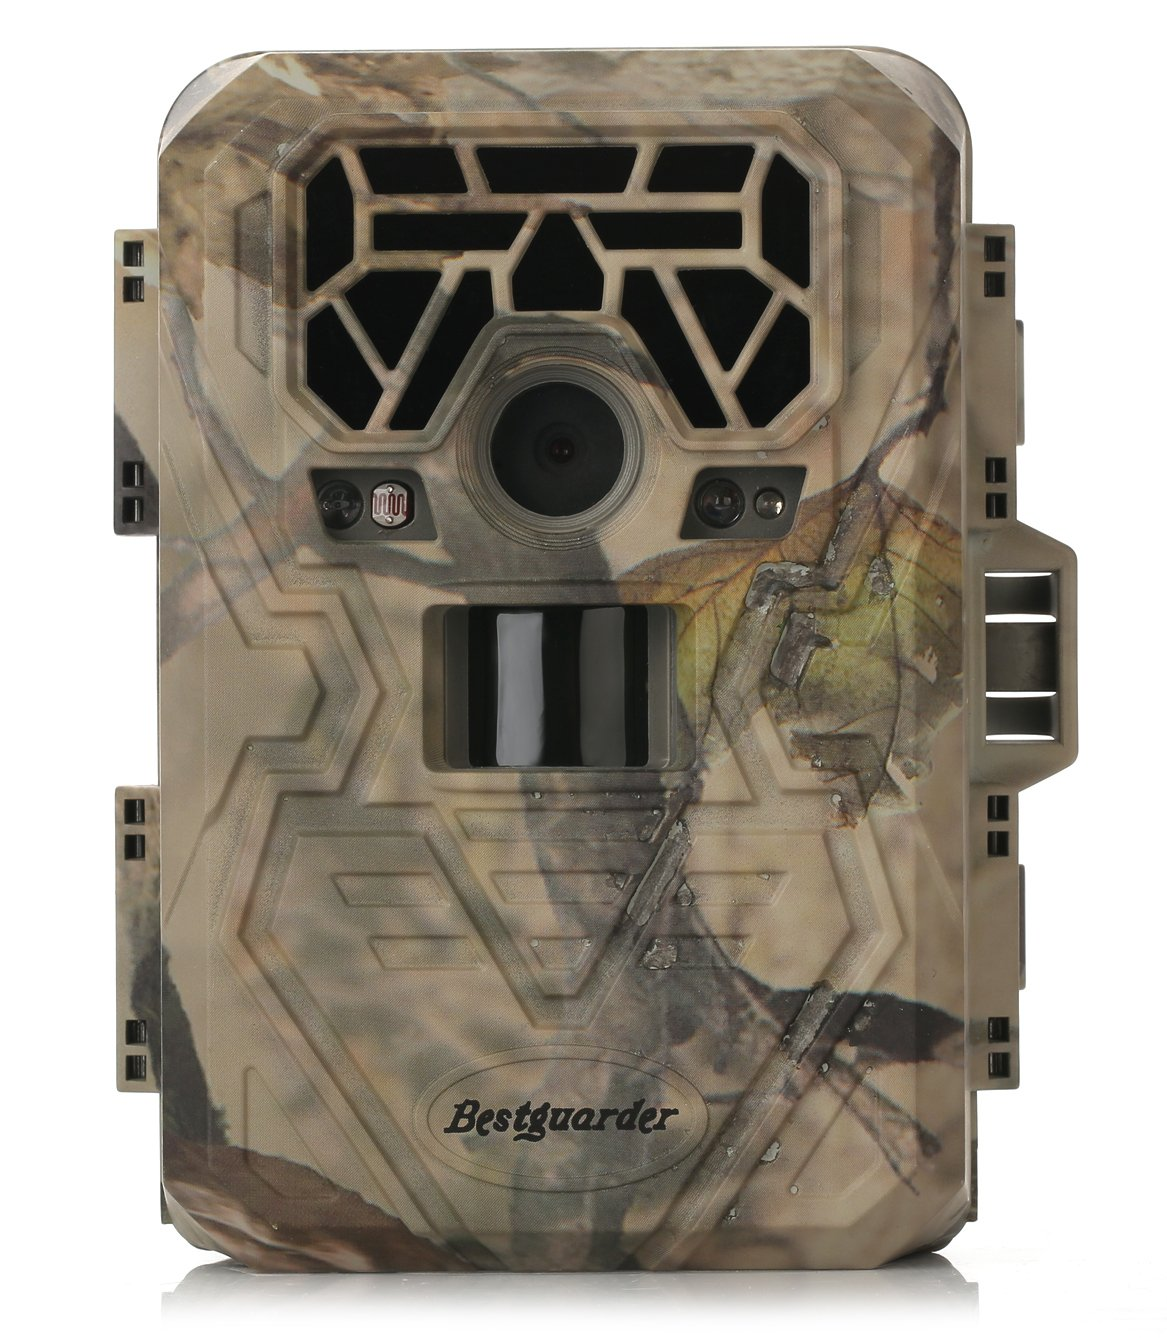 Trail Camera Night Vision Game Camera Waterproof IR LEDs Takes HD 12mp Image 1080p Video from 75feet Distance with 2.0'' LCD Screen for Hunting&Scouting / Security & Surveillance / Wildwife Observation by Bestguarder (Image #1)